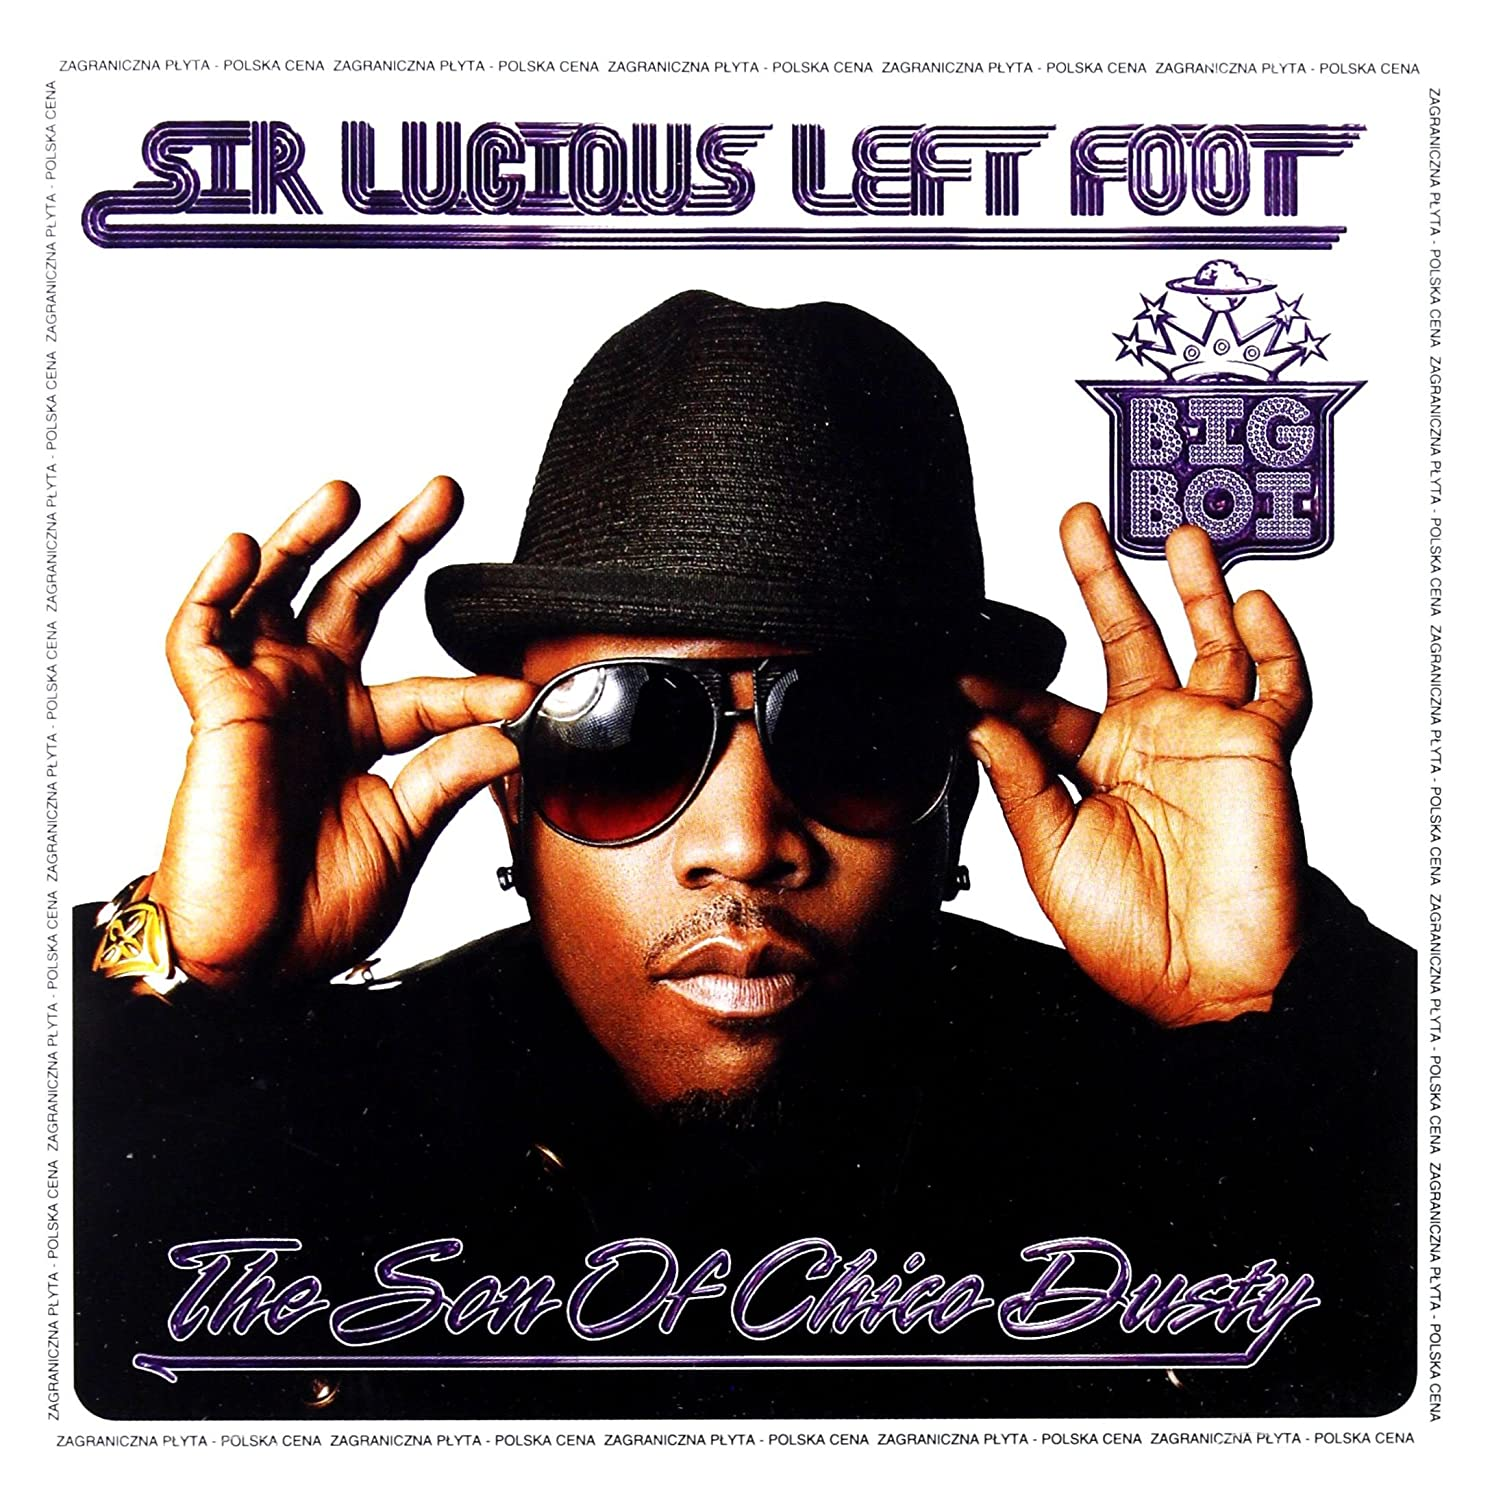 Big Boi, Sir Lucious Left Foot: The Son of Chico Dusty